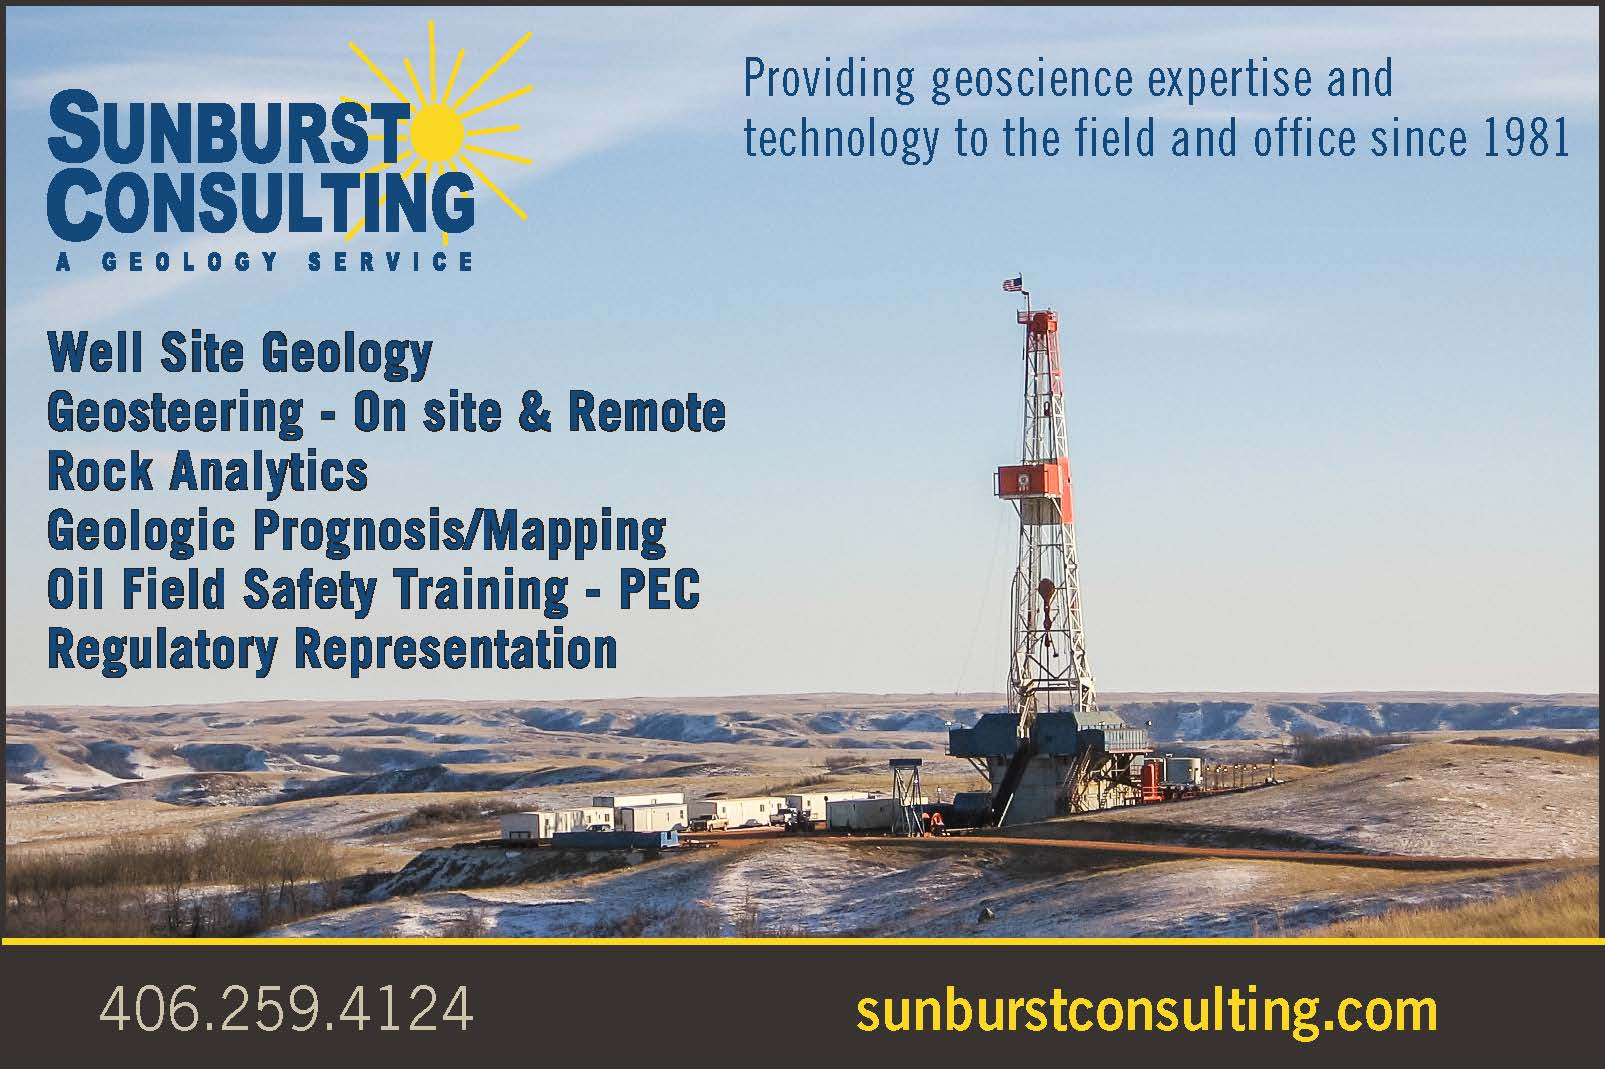 Sunburst Consulting